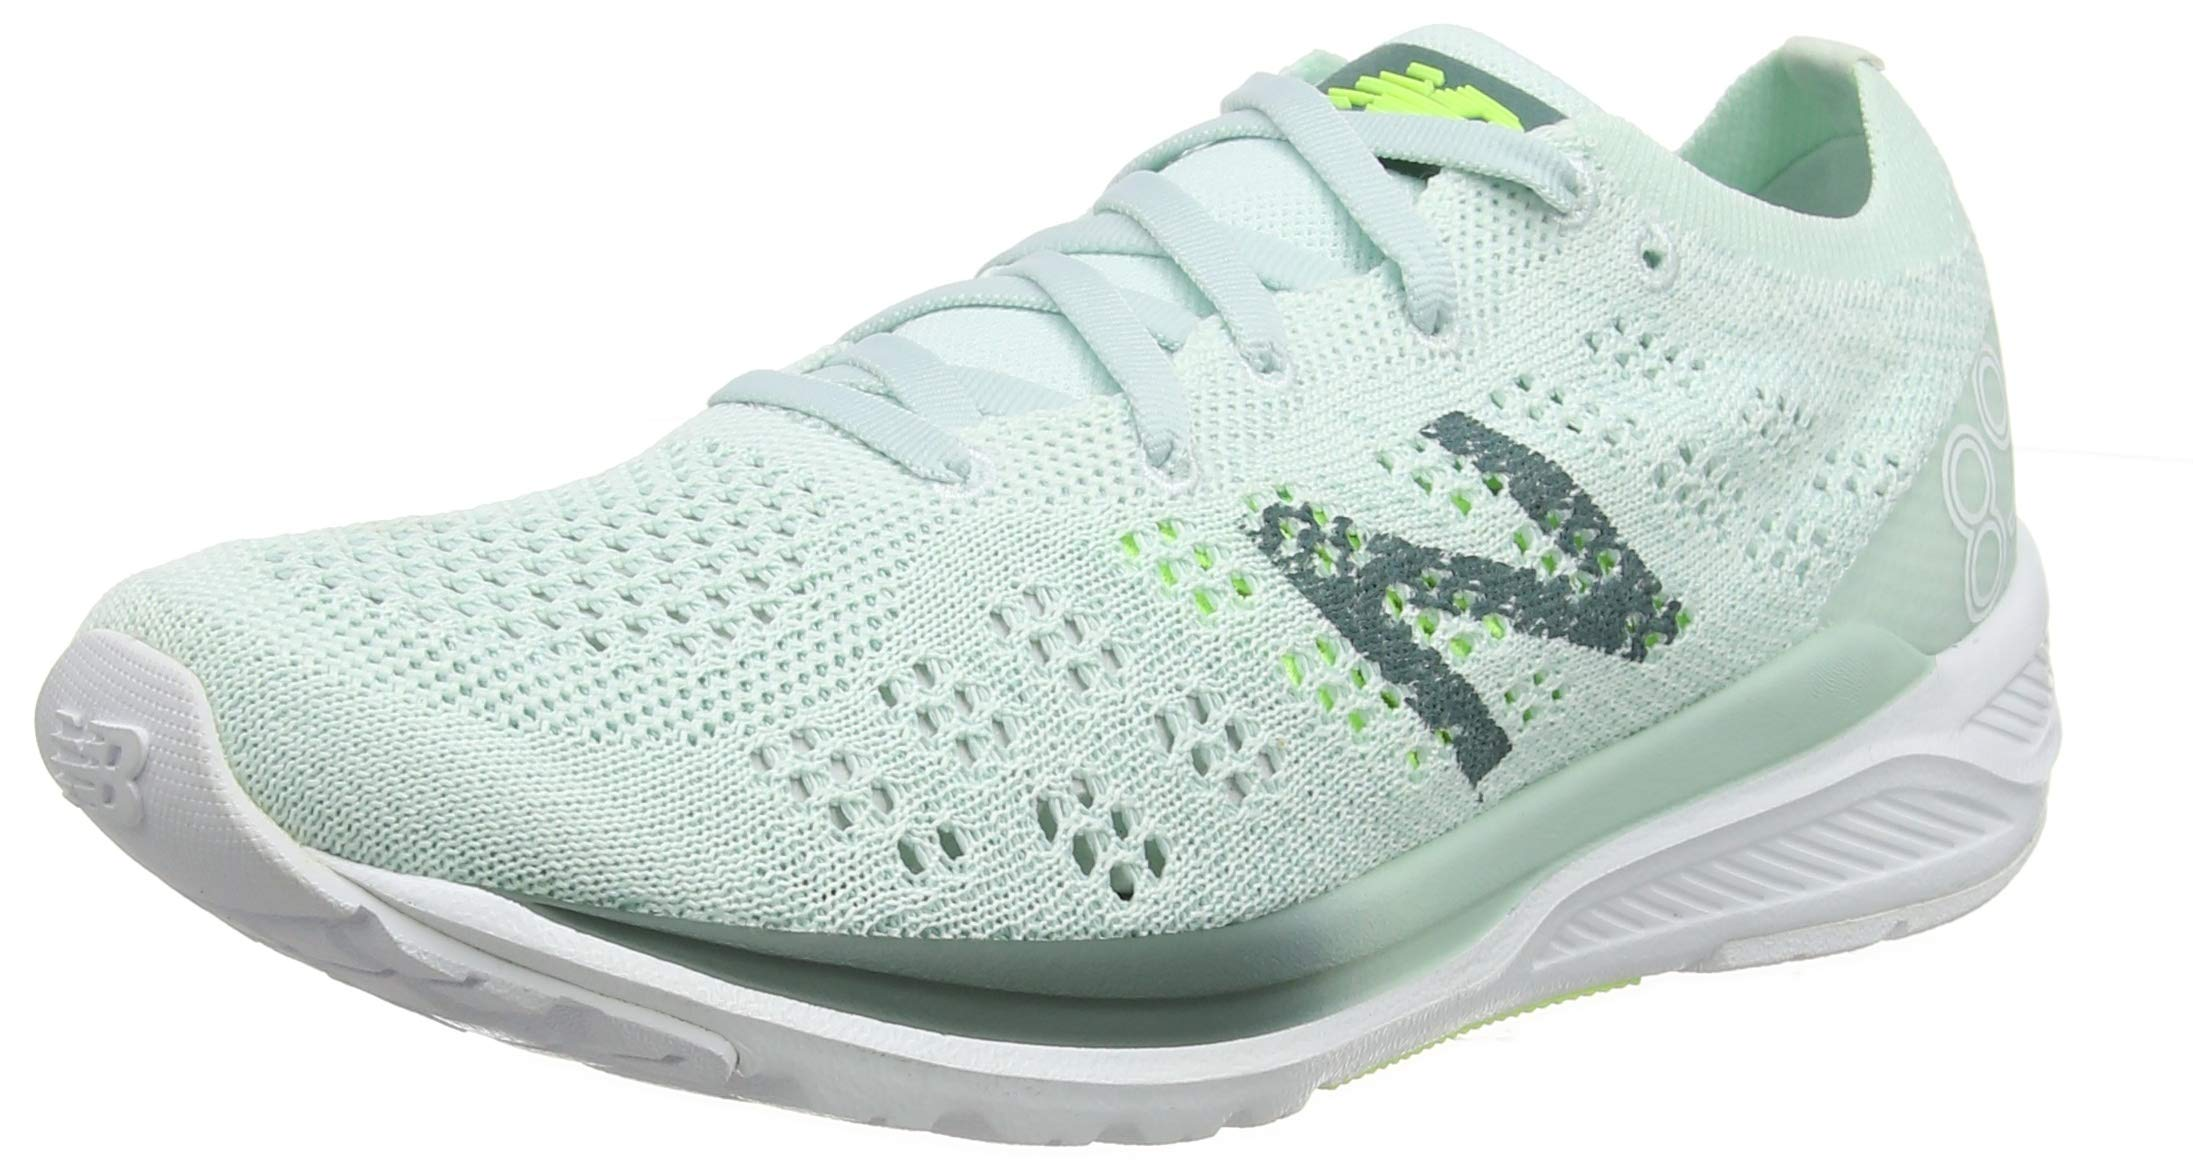 New Balance Women's 890v7 Running Shoe, Crystal SAGE/Dark Agave/Bleached Lime GLO, 5 W US